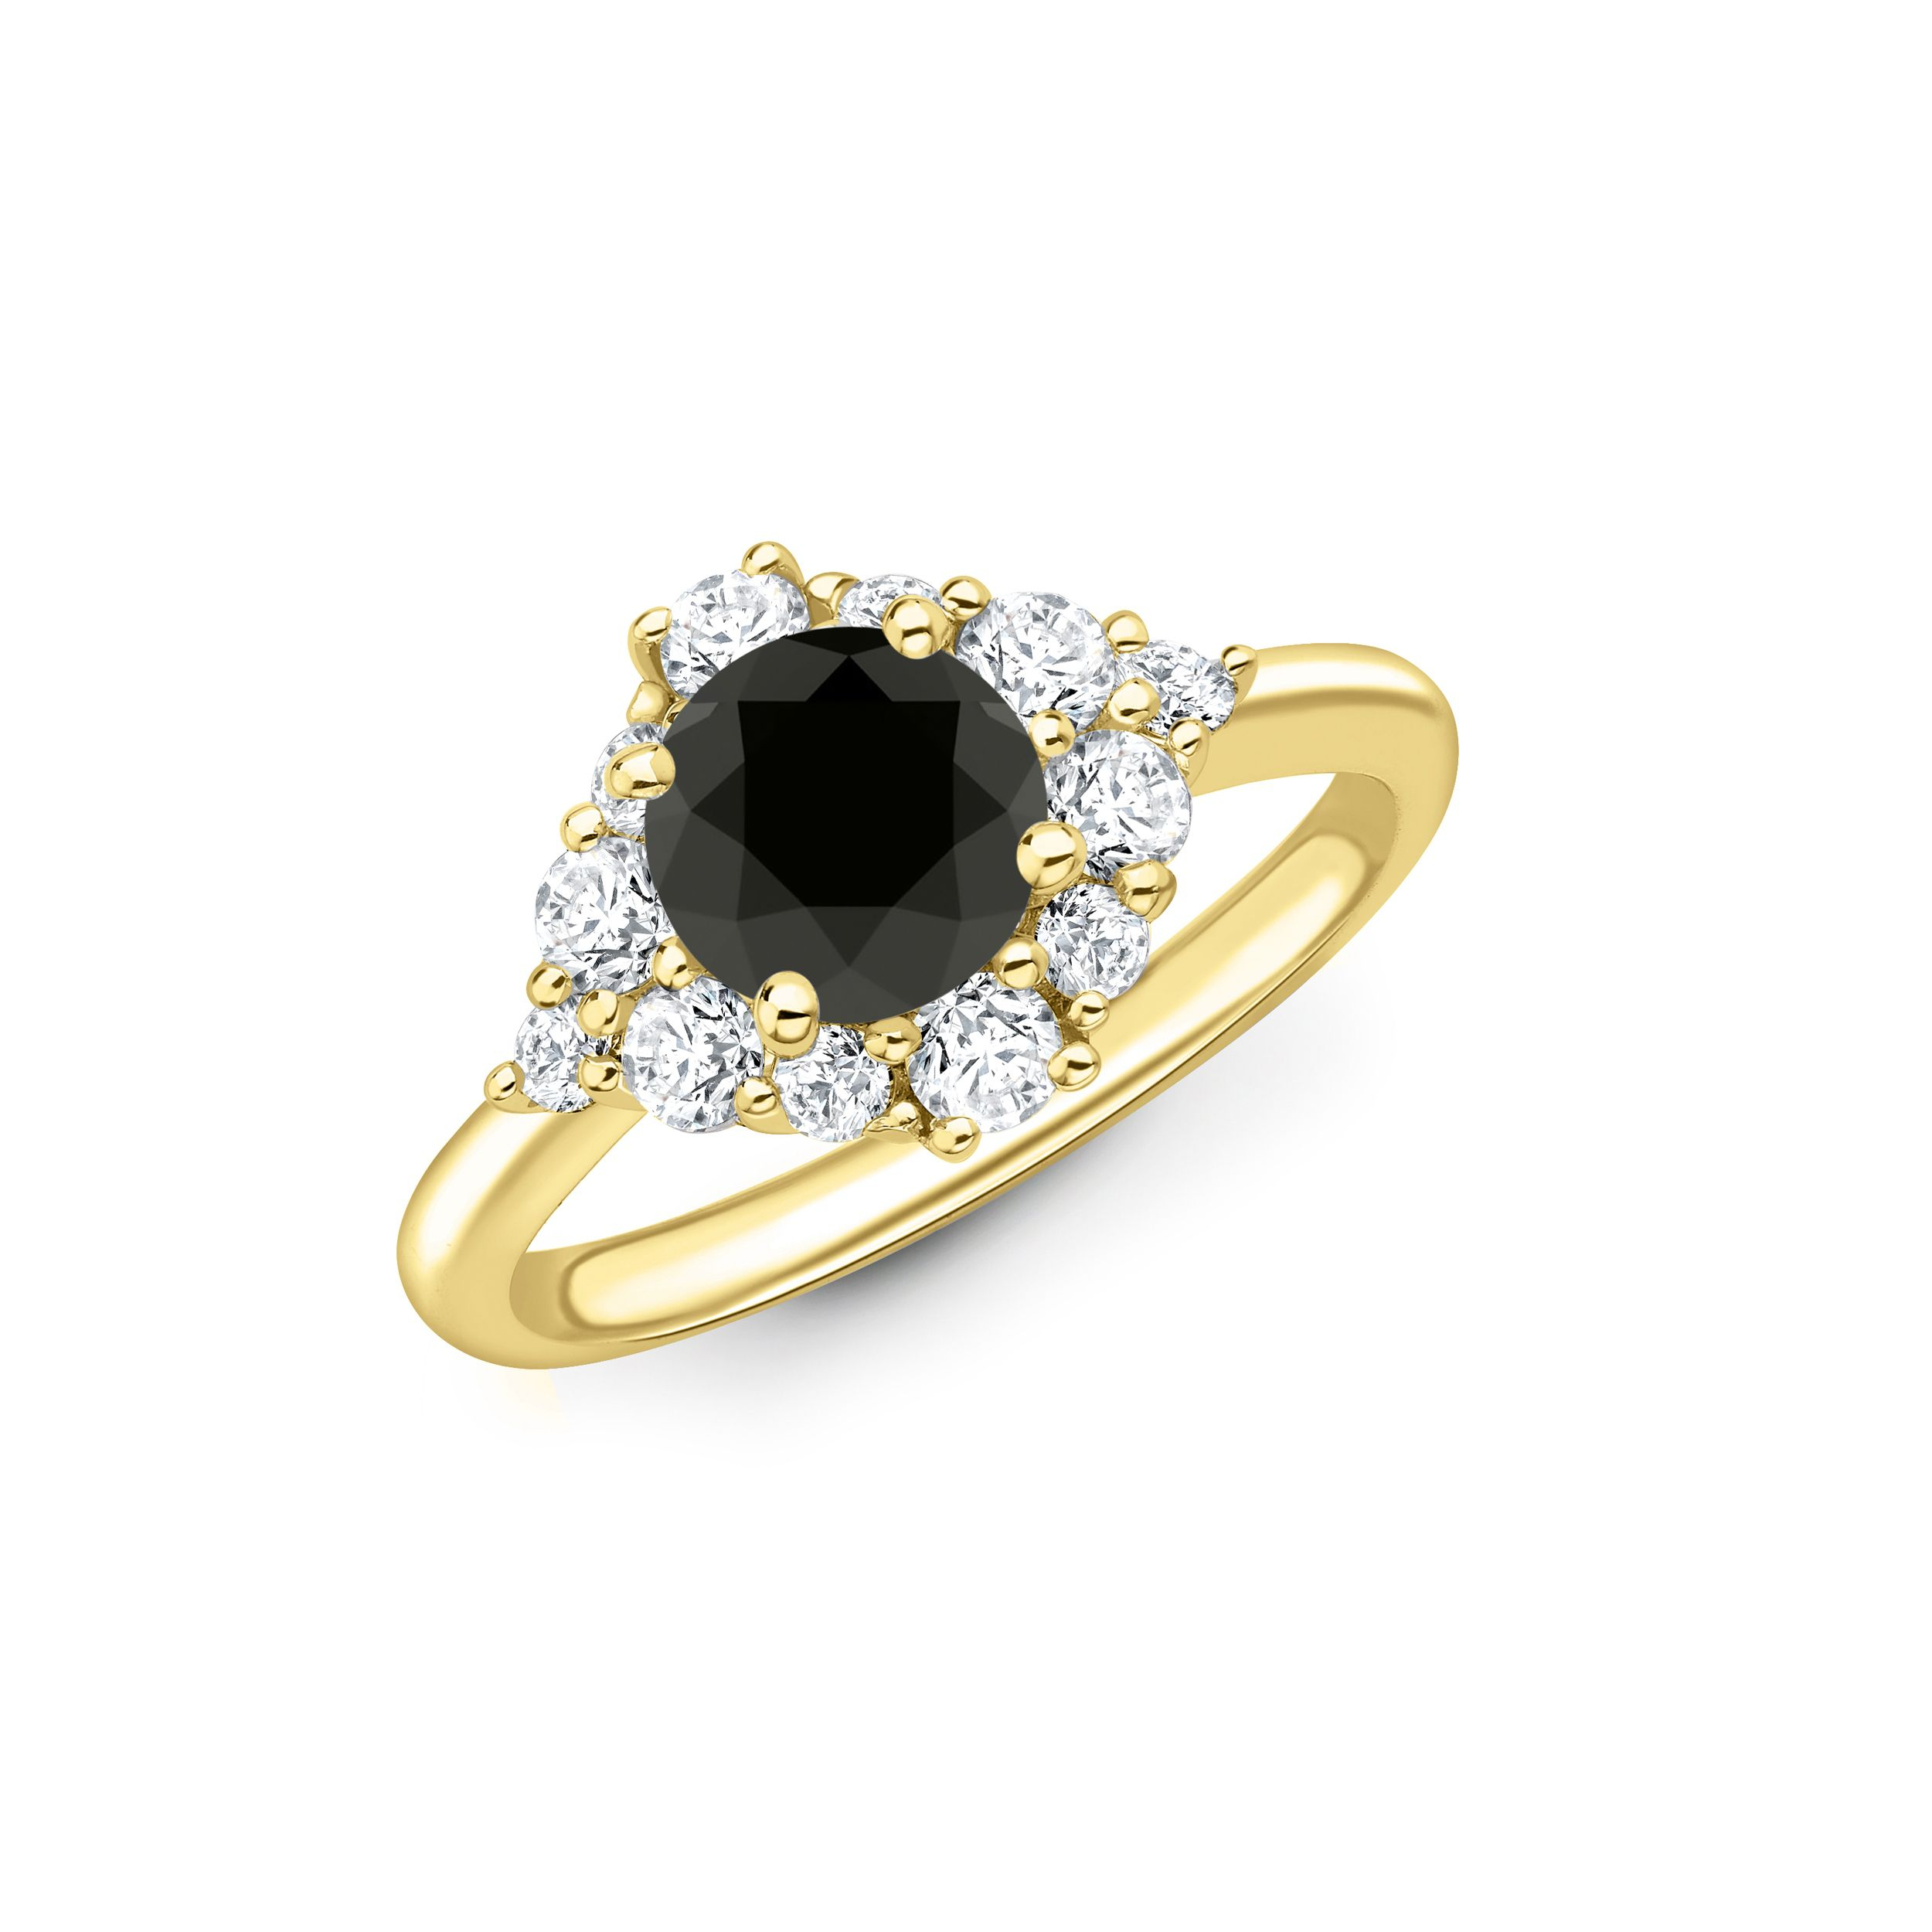 Shop For Sparkling Cluster Style Halo Engagement Ring With Black Diamond | Abelini™ Inside 2018 Sparkling Halo Rings (View 9 of 25)